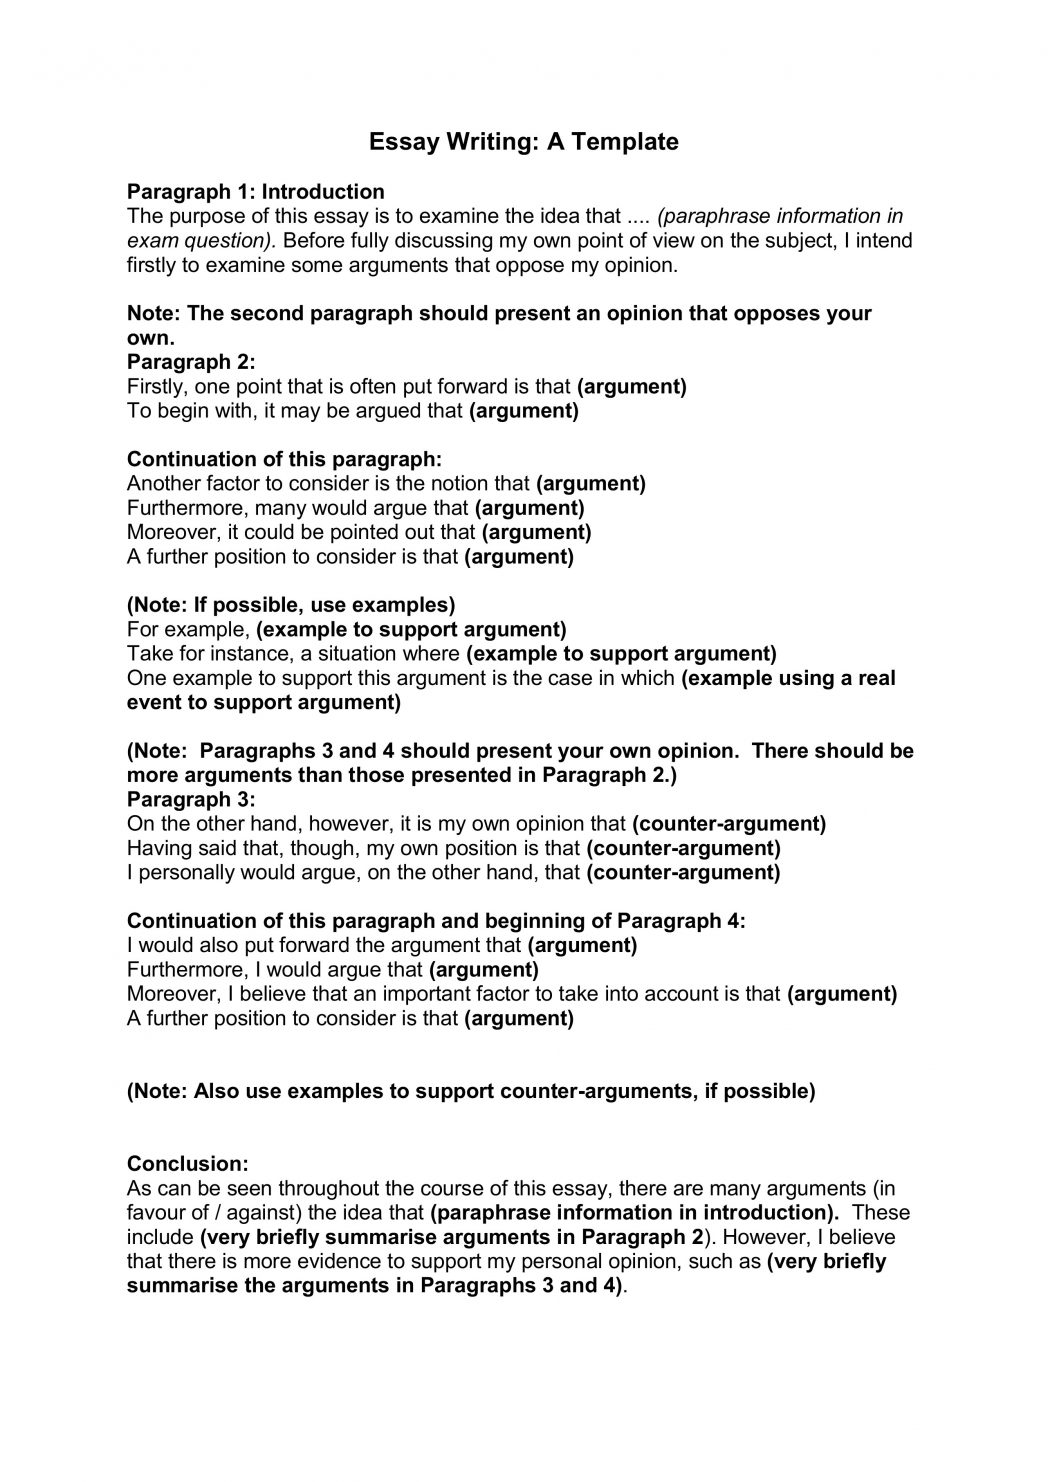 010 Essay Example Start How To Creative Writing Ways College With Quote Template For P Hook About Yourself Prompt Scholarship Application Your Background Examples Failure Wonderful An A Argumentative Write Format Mla Full